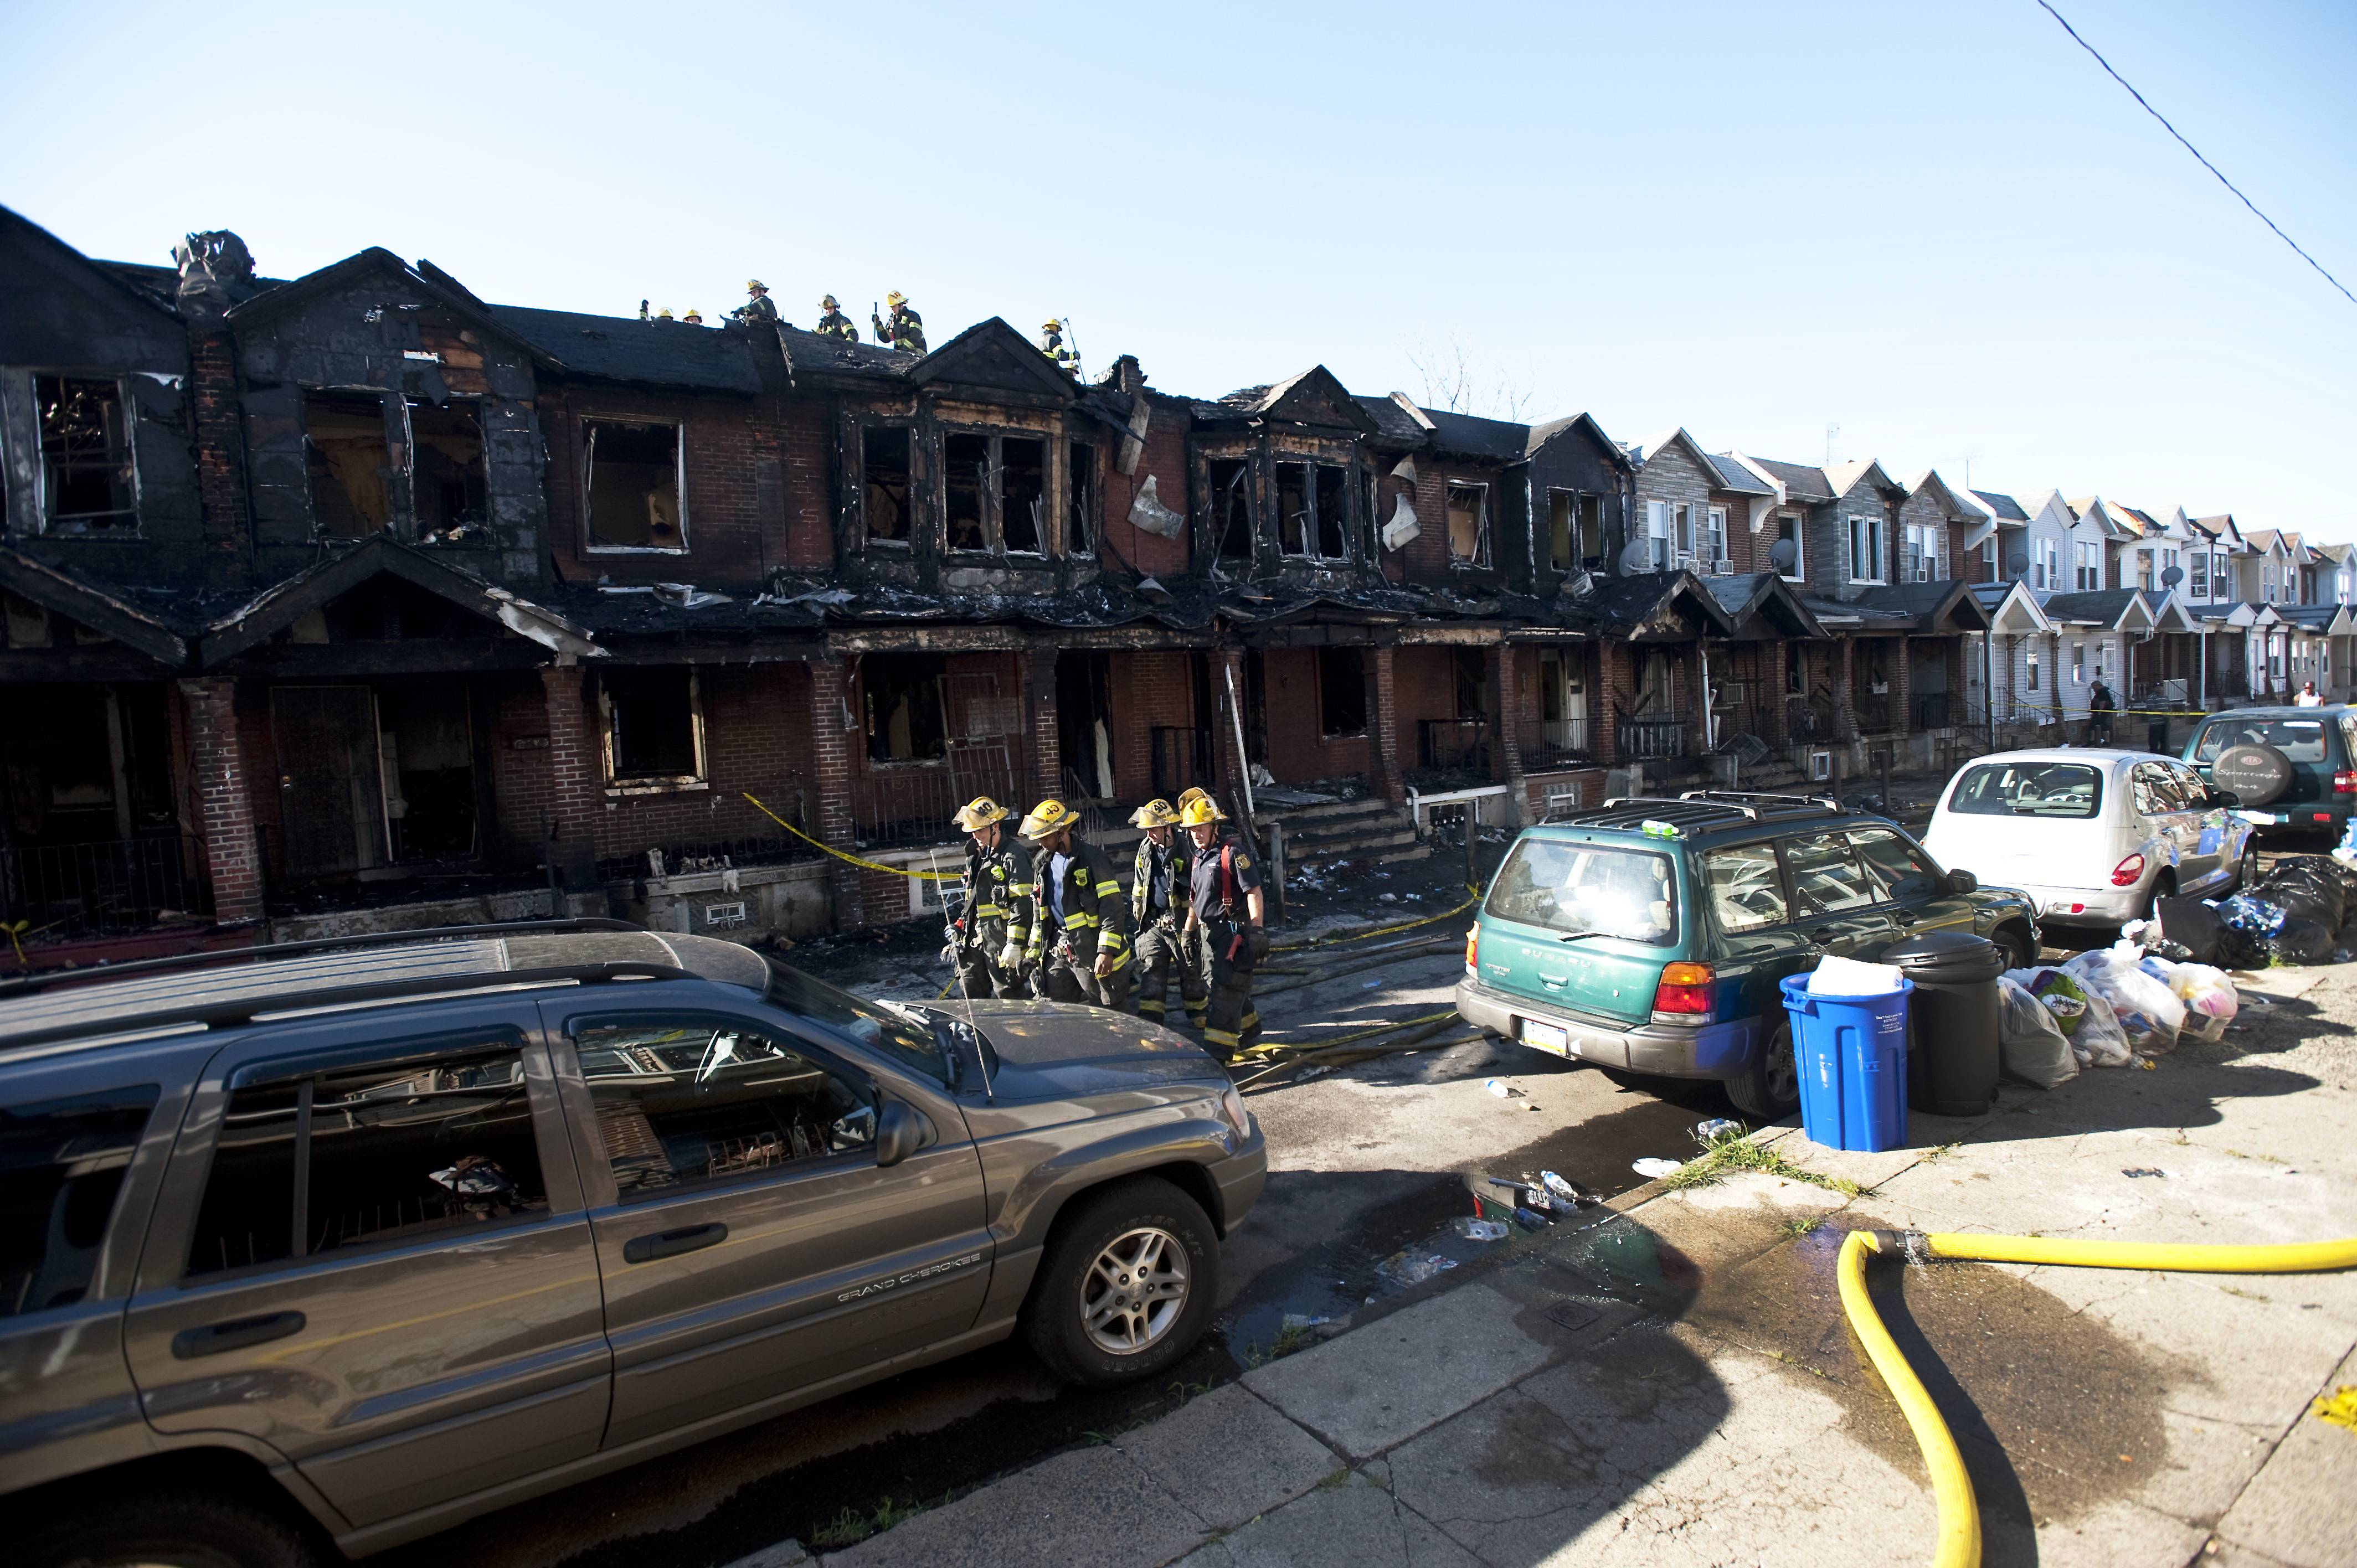 Philadelphia firefighters walk past burned row homes on Saturday in Philadelphia after a fast-moving row house fire early Saturday left four children dead. Fire department officials say there is no immediate word on how many others were injured in the blaze that destroyed eight homes in the row and engulfed a total of 10 houses.